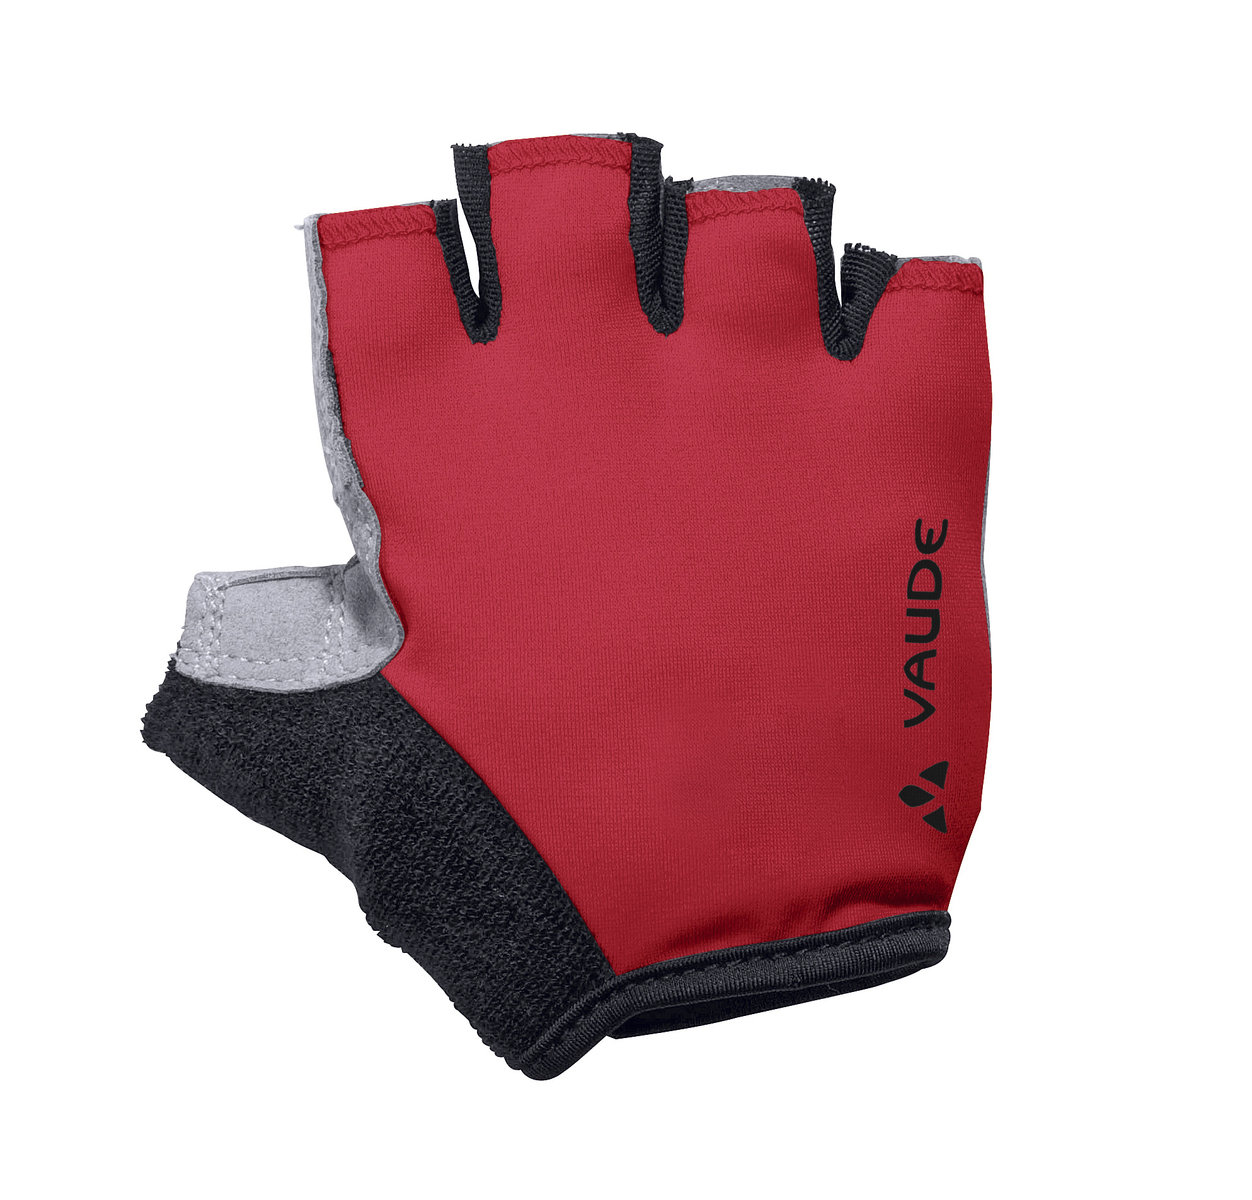 Kids Grody Gloves red Größe 3 - schneider-sports